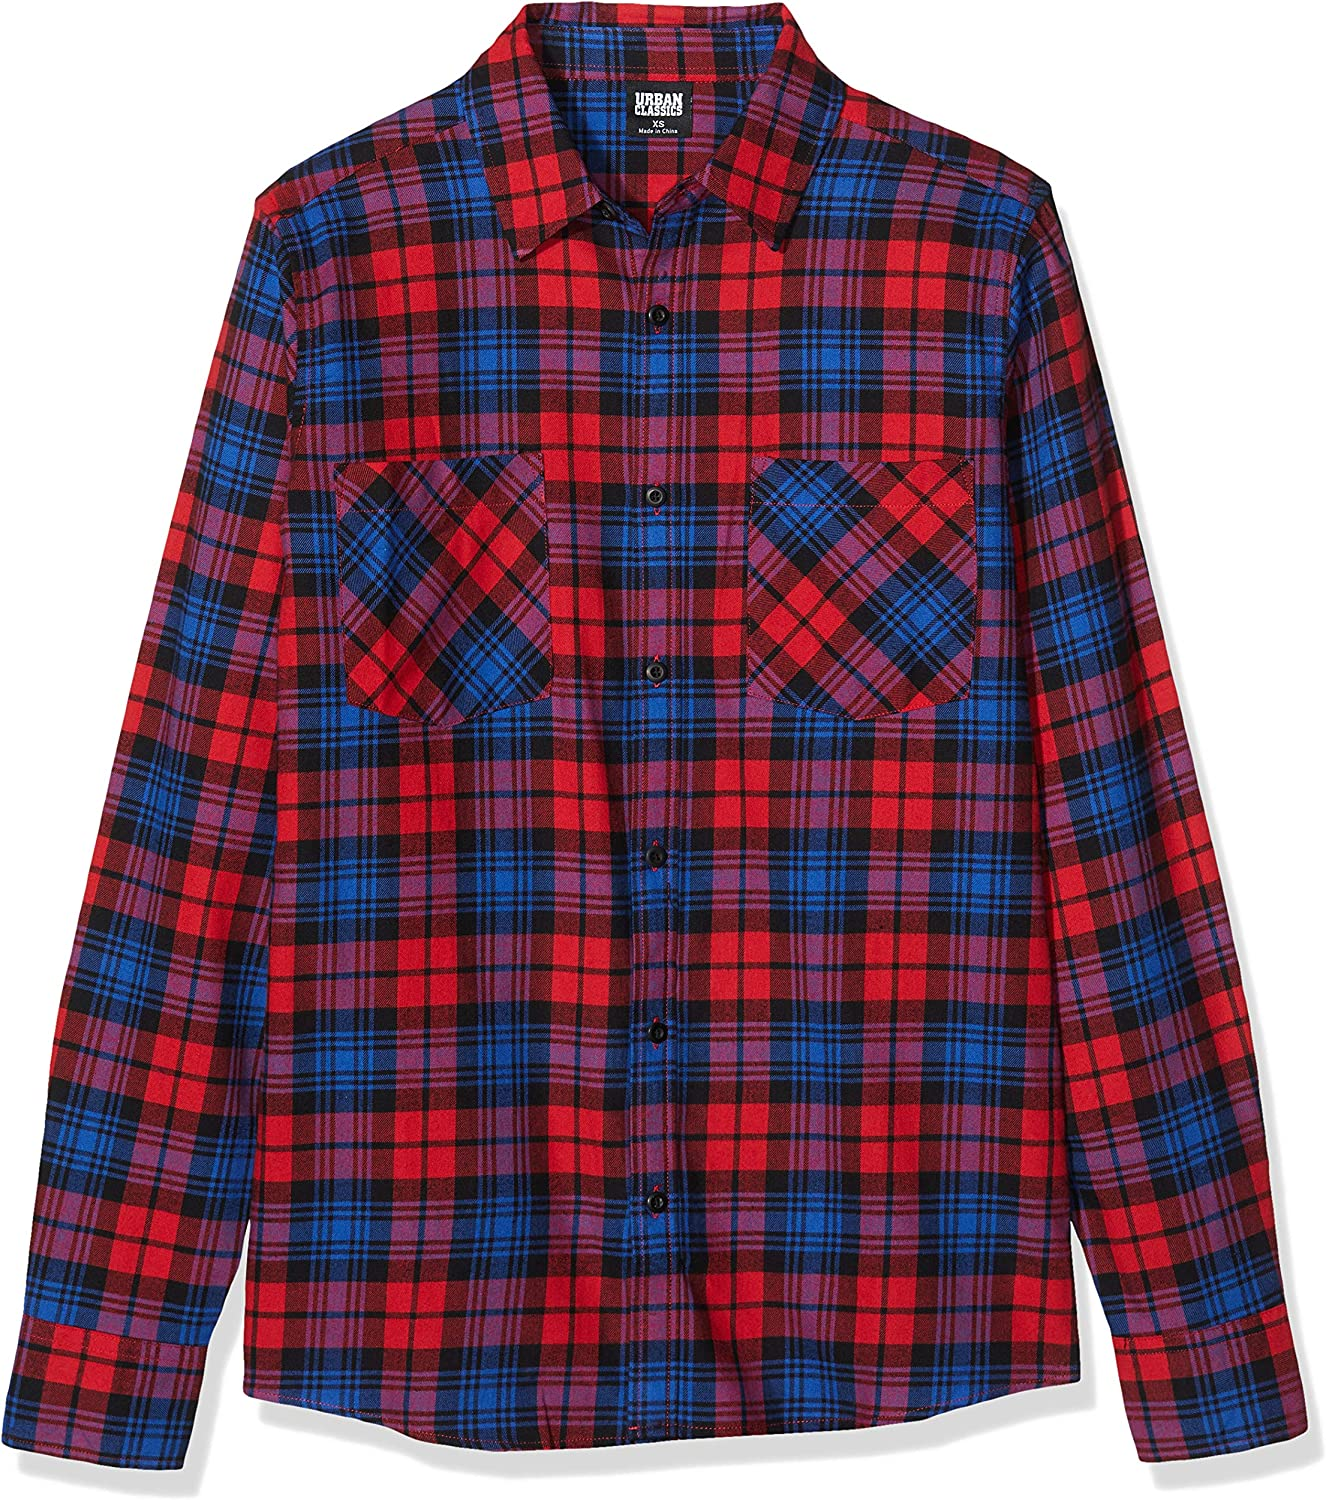 Urban Classics - Checked Flanell Button Up Shirt